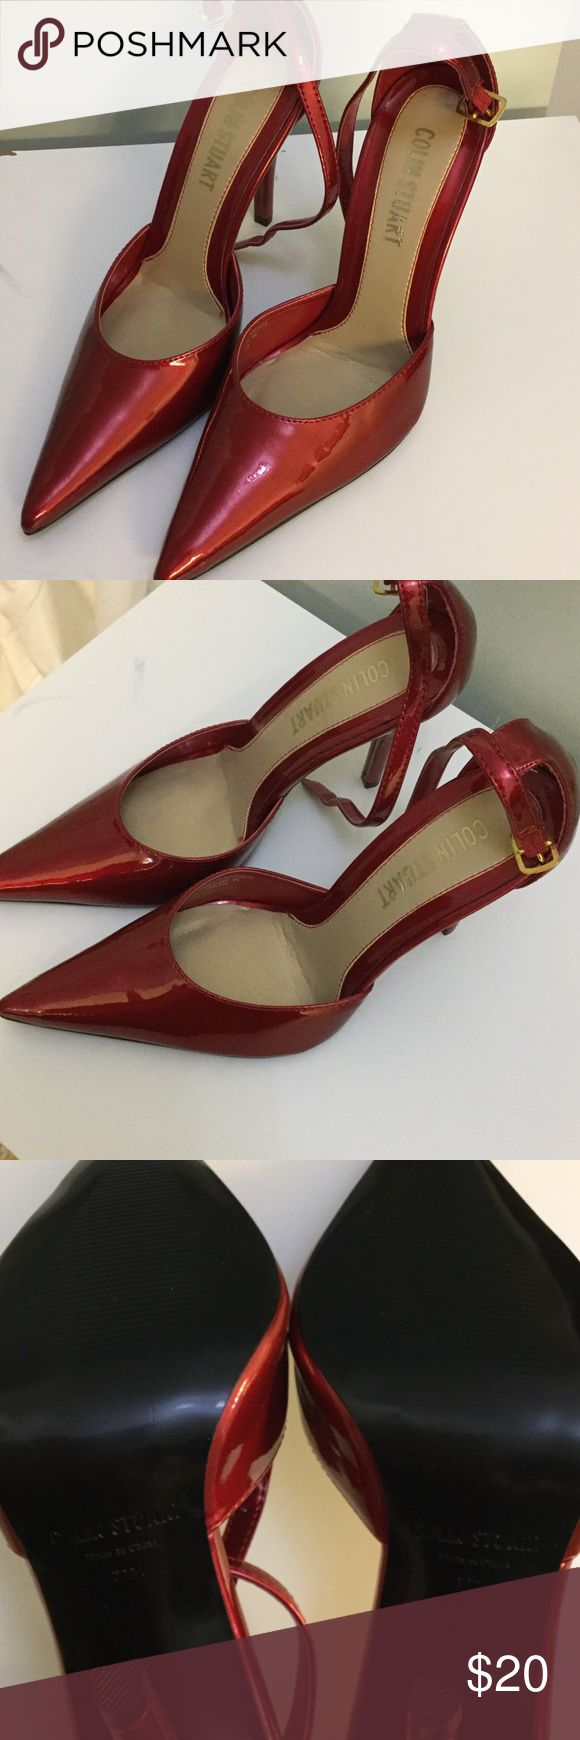 "Red patent Colin Stuart heels Beautiful red patent Colin Stuart 4"" heels. Have adjustable strap for heel. Great condition. Wear only on strap. Size 7.5. Colin Stuart Shoes Heels"